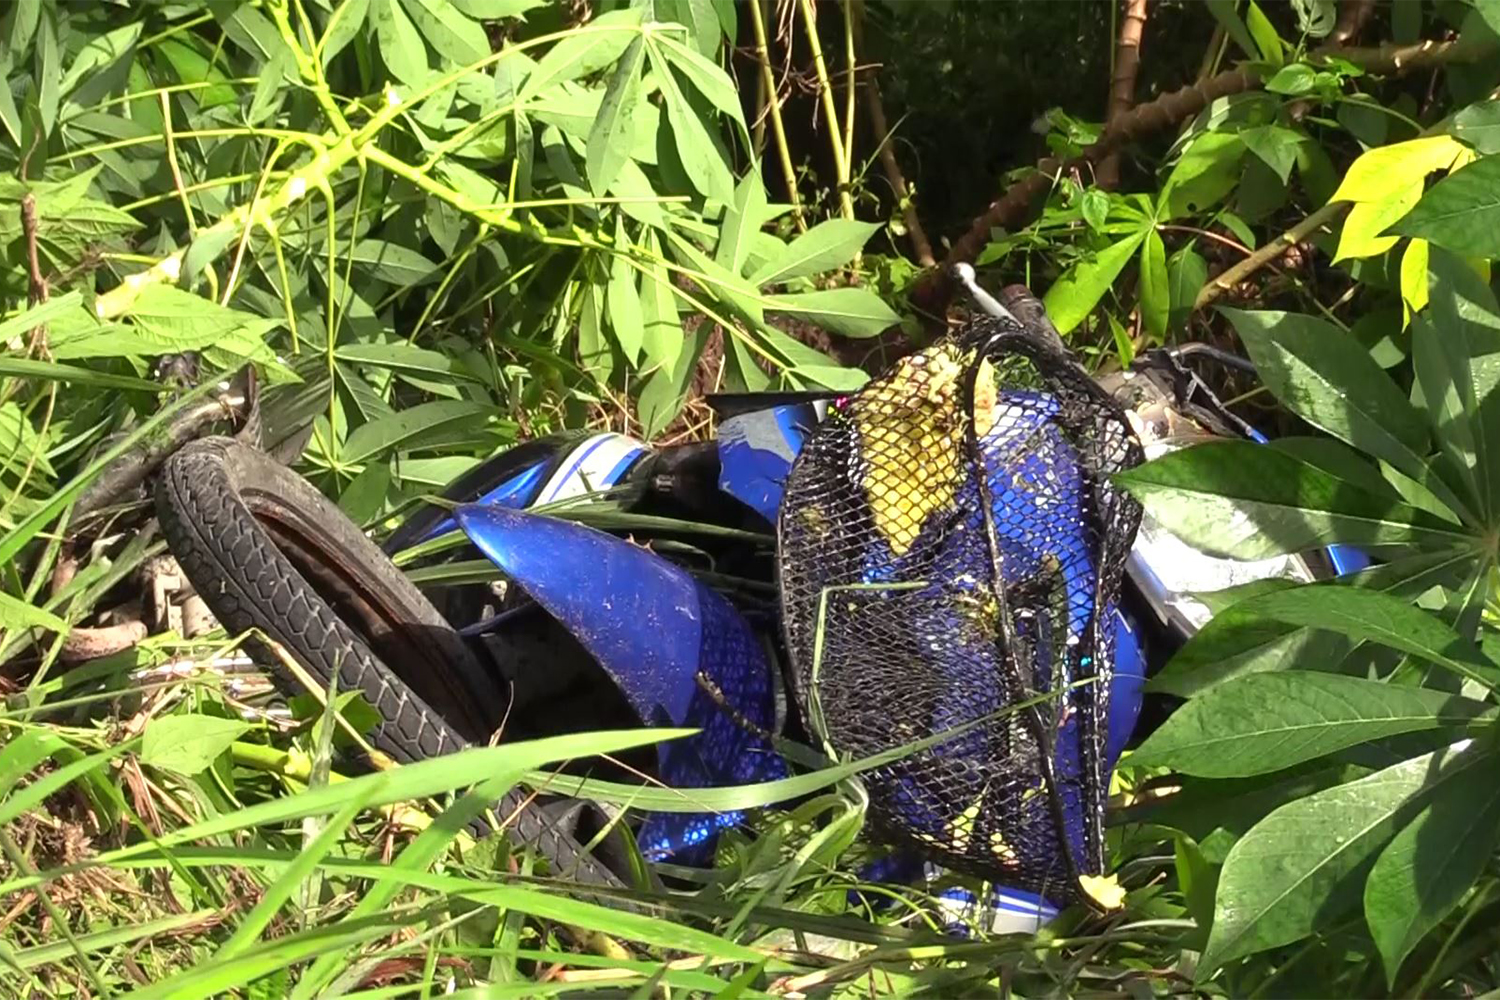 The remains of a motorcycle that crashed into a power pole in Phrom Khiri district of Nakhon Si Thammarat on Sunday. The driver, who was looking at a smartphone at the time of impact, was killed. (Photo by Nujaree Raekrun)